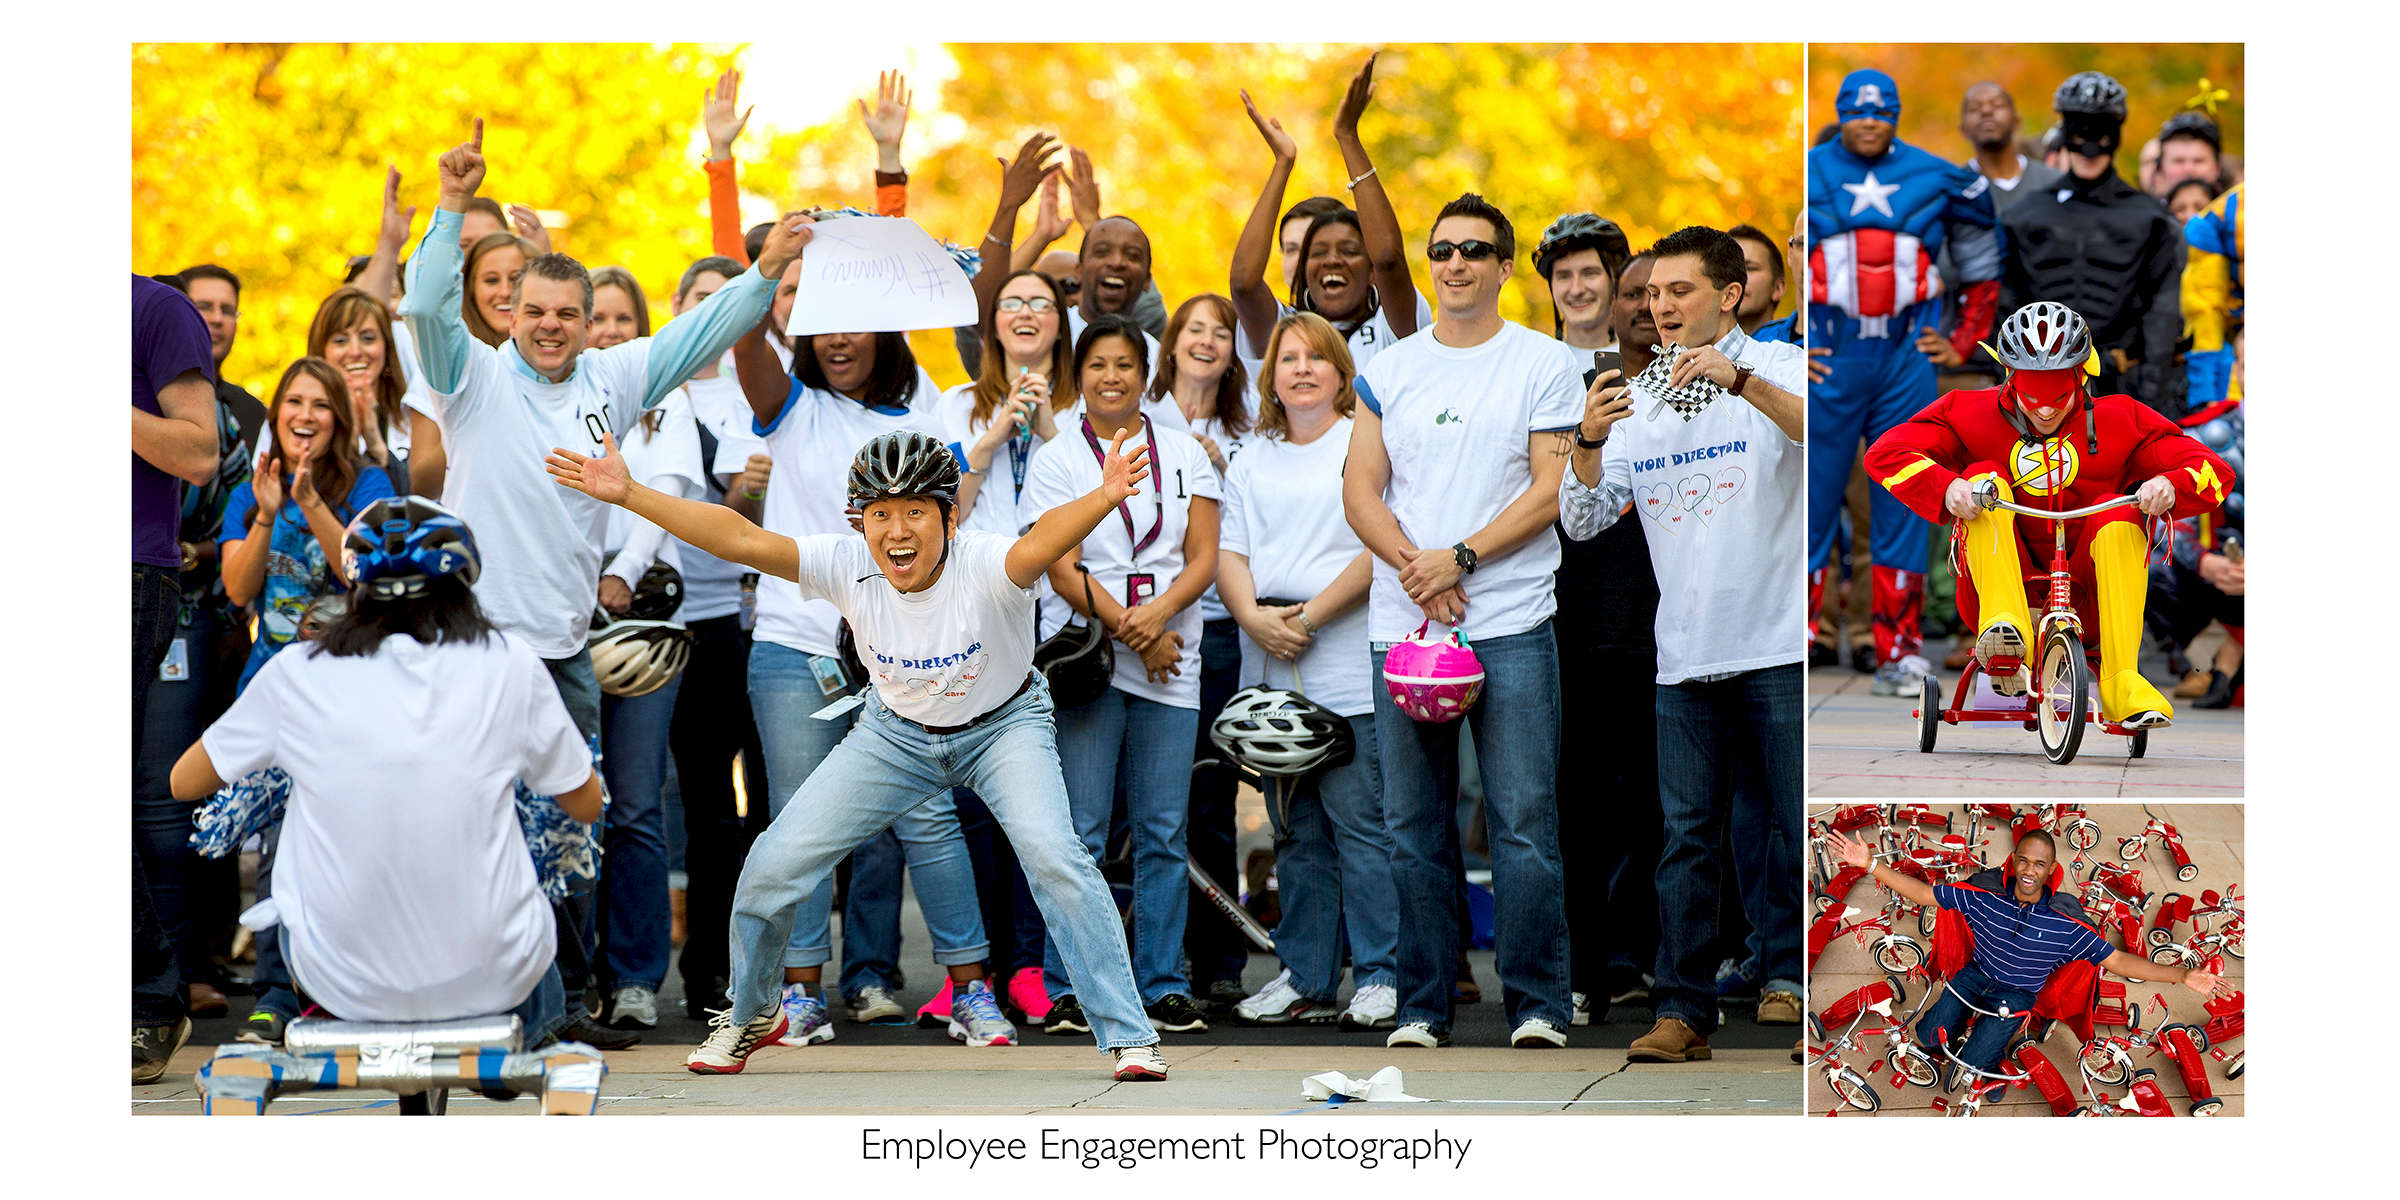 Grouping of multiple photos designed together to illustrate employees having fun while celebrating the results of the company's United Way fundraising campaign. The employees decorated tricycles and then raced them on relay teams. The tricycles were donated to a local children's charity.